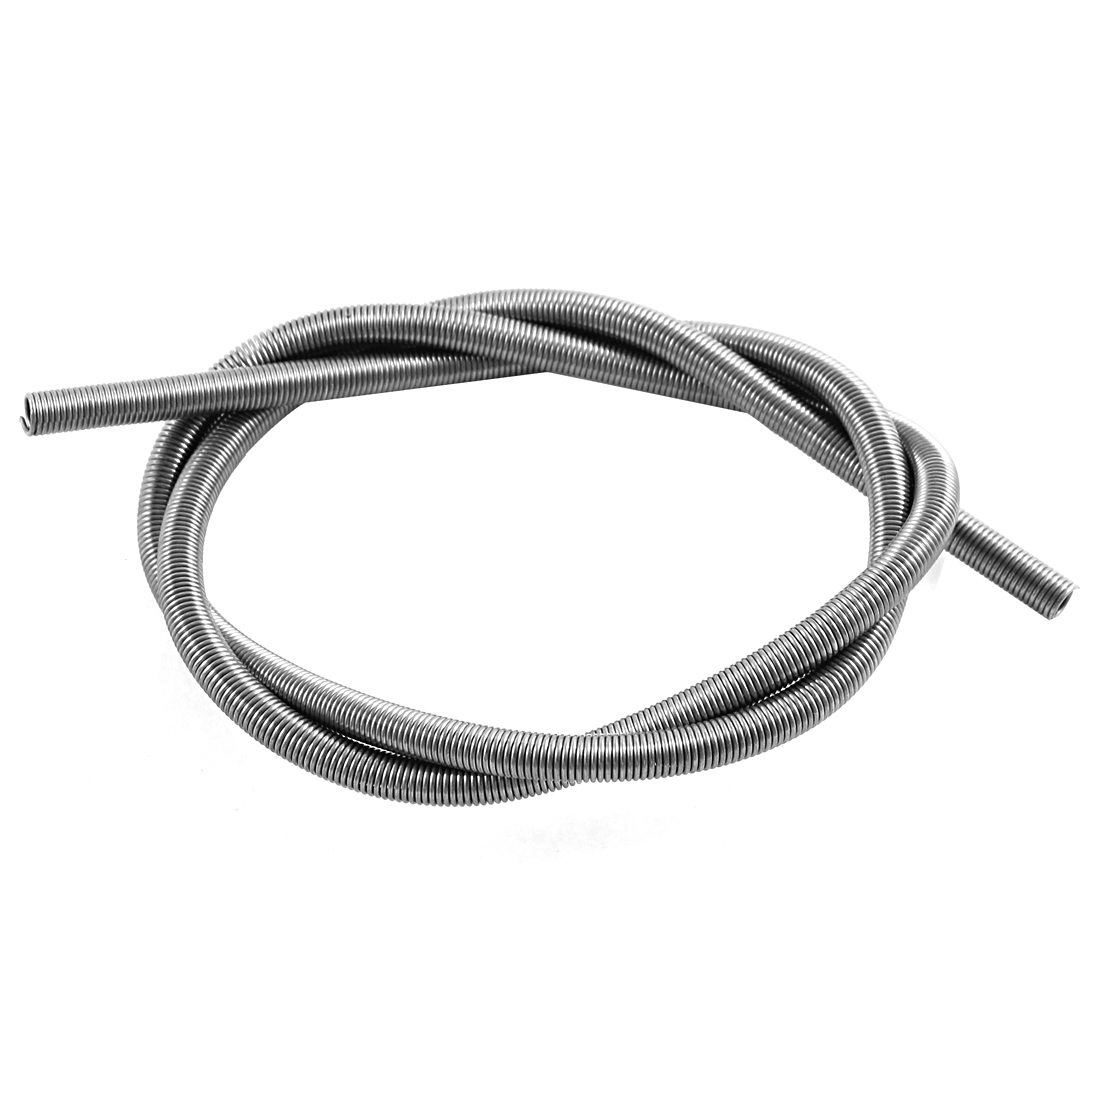 AC 220V 1500W Metal Heating Element Coil 57cm Long Silver Tone